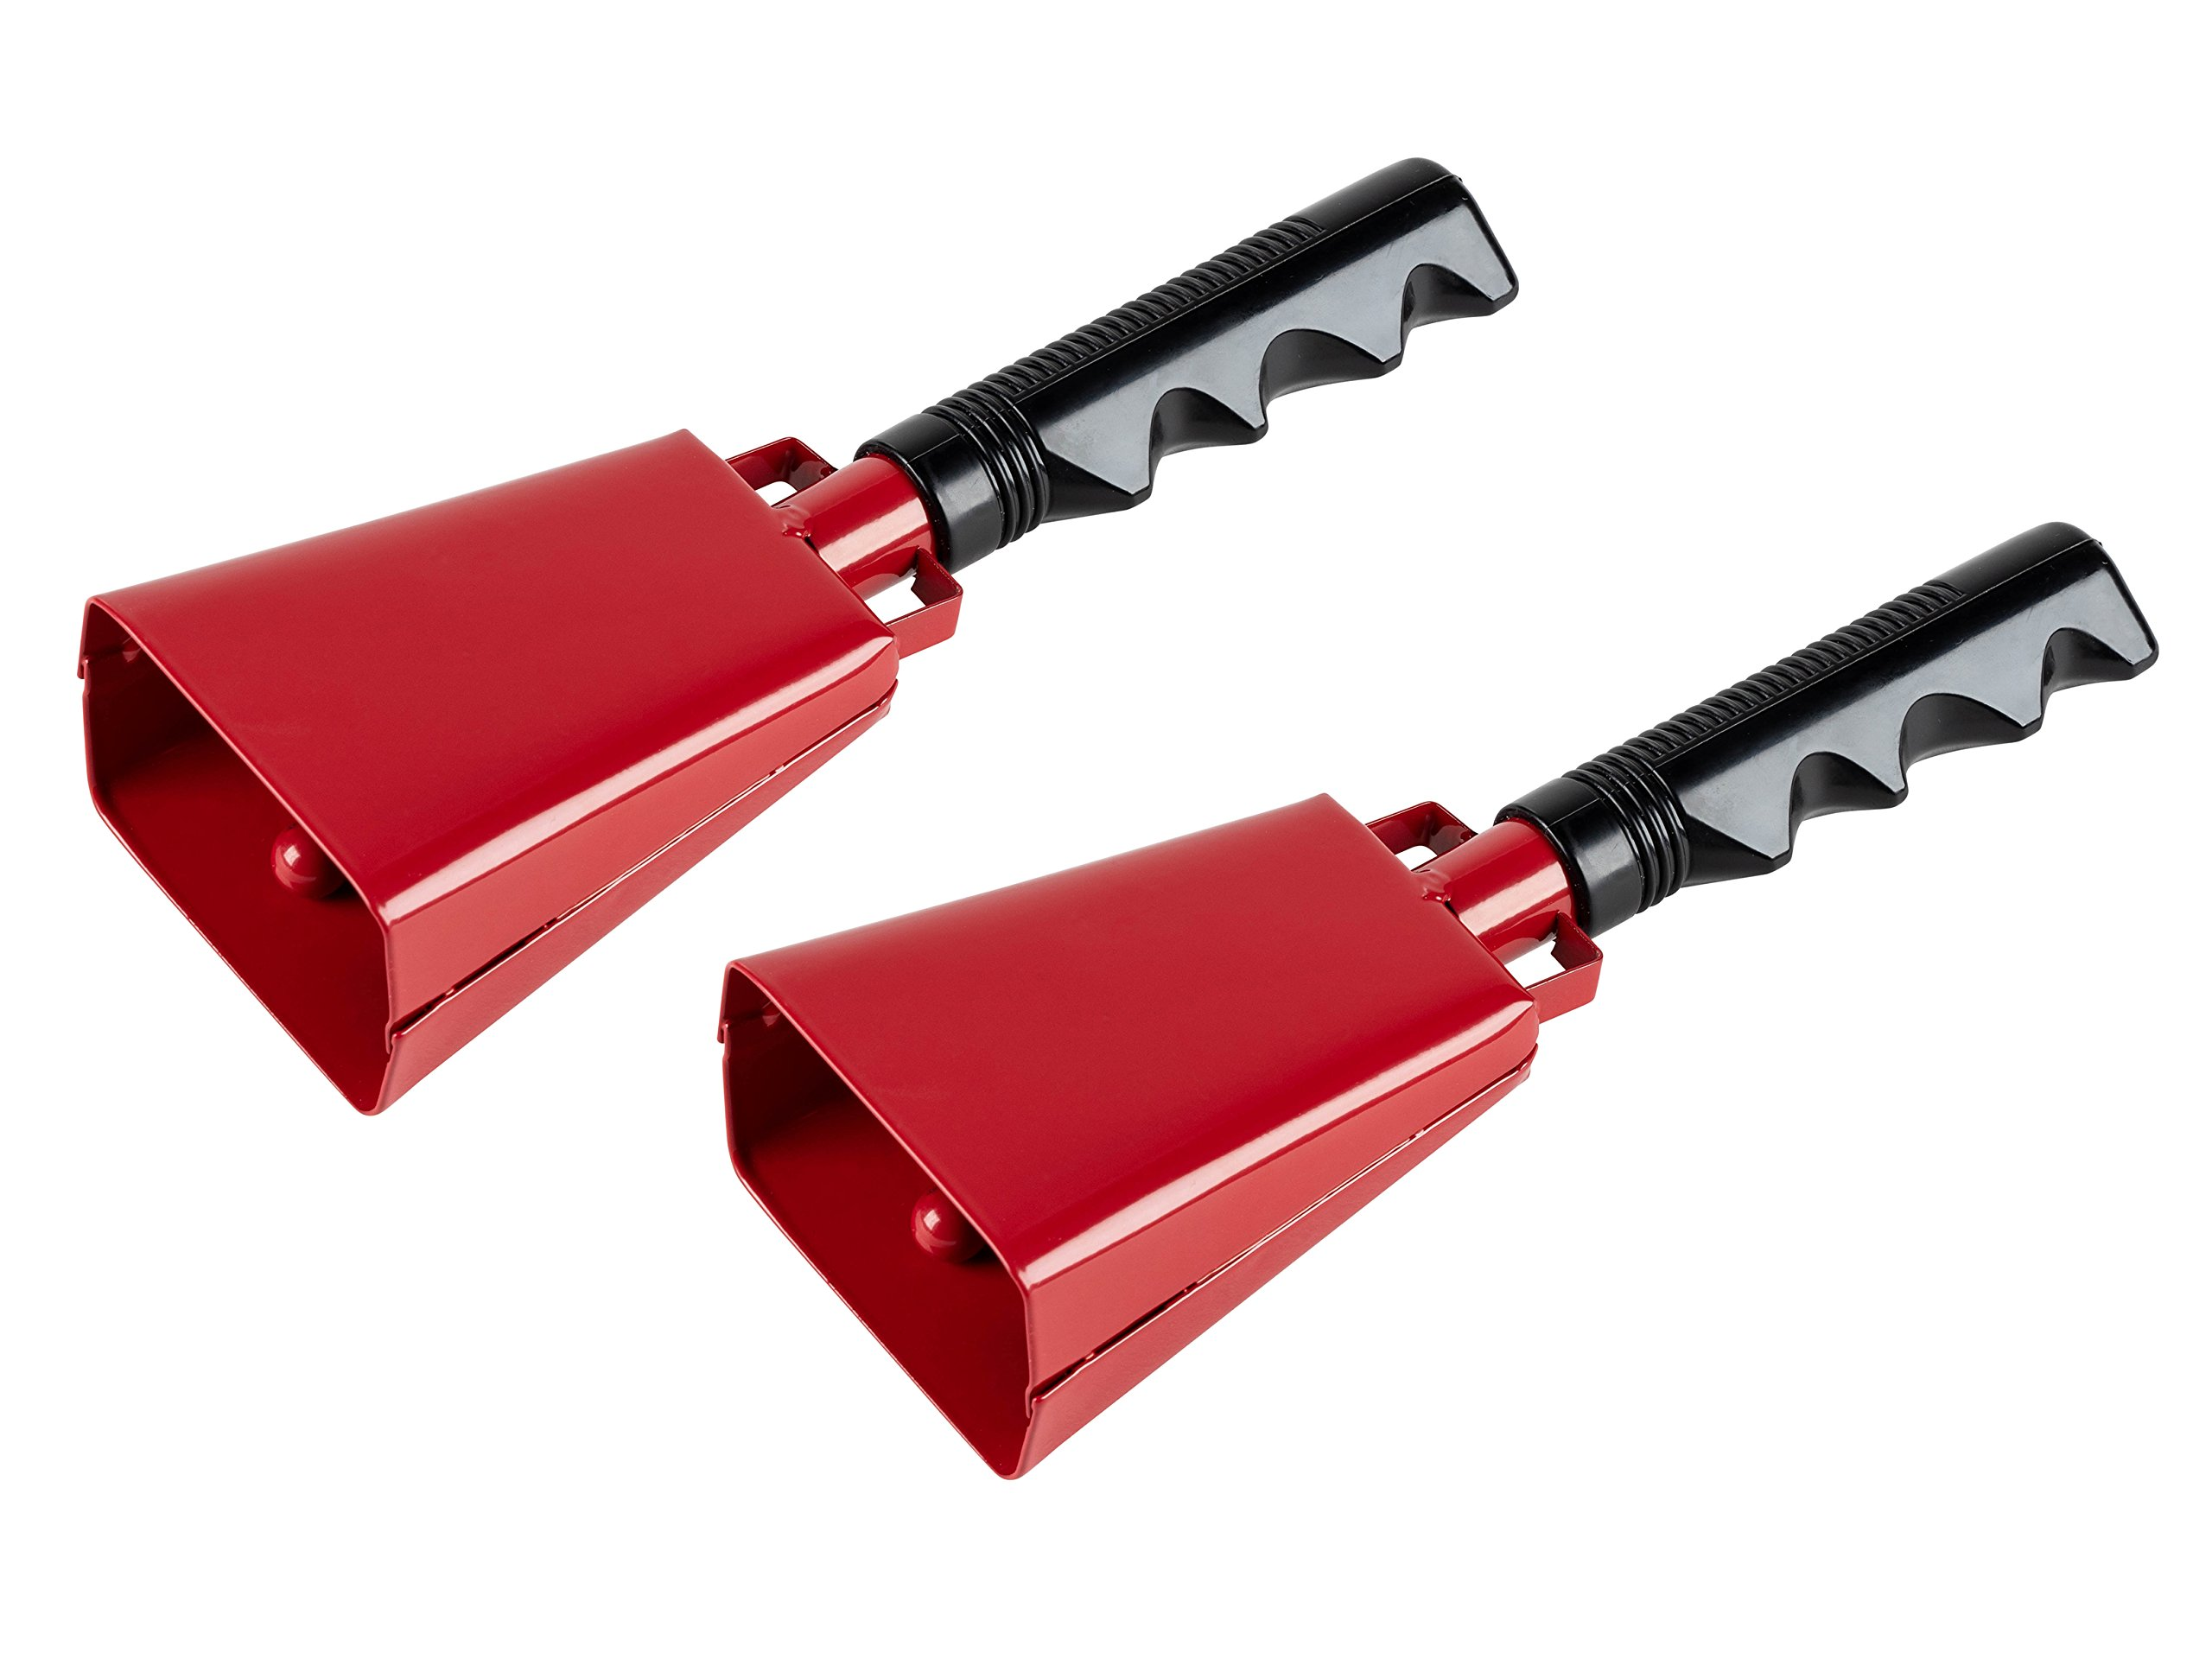 Cowbell with Handle - 2-Pack Cow Bell Noismakers, Loud Call Bells for Cheers, Sports Games, Weddings, Farm, Red, 3 x 9.125 x 2 Inches